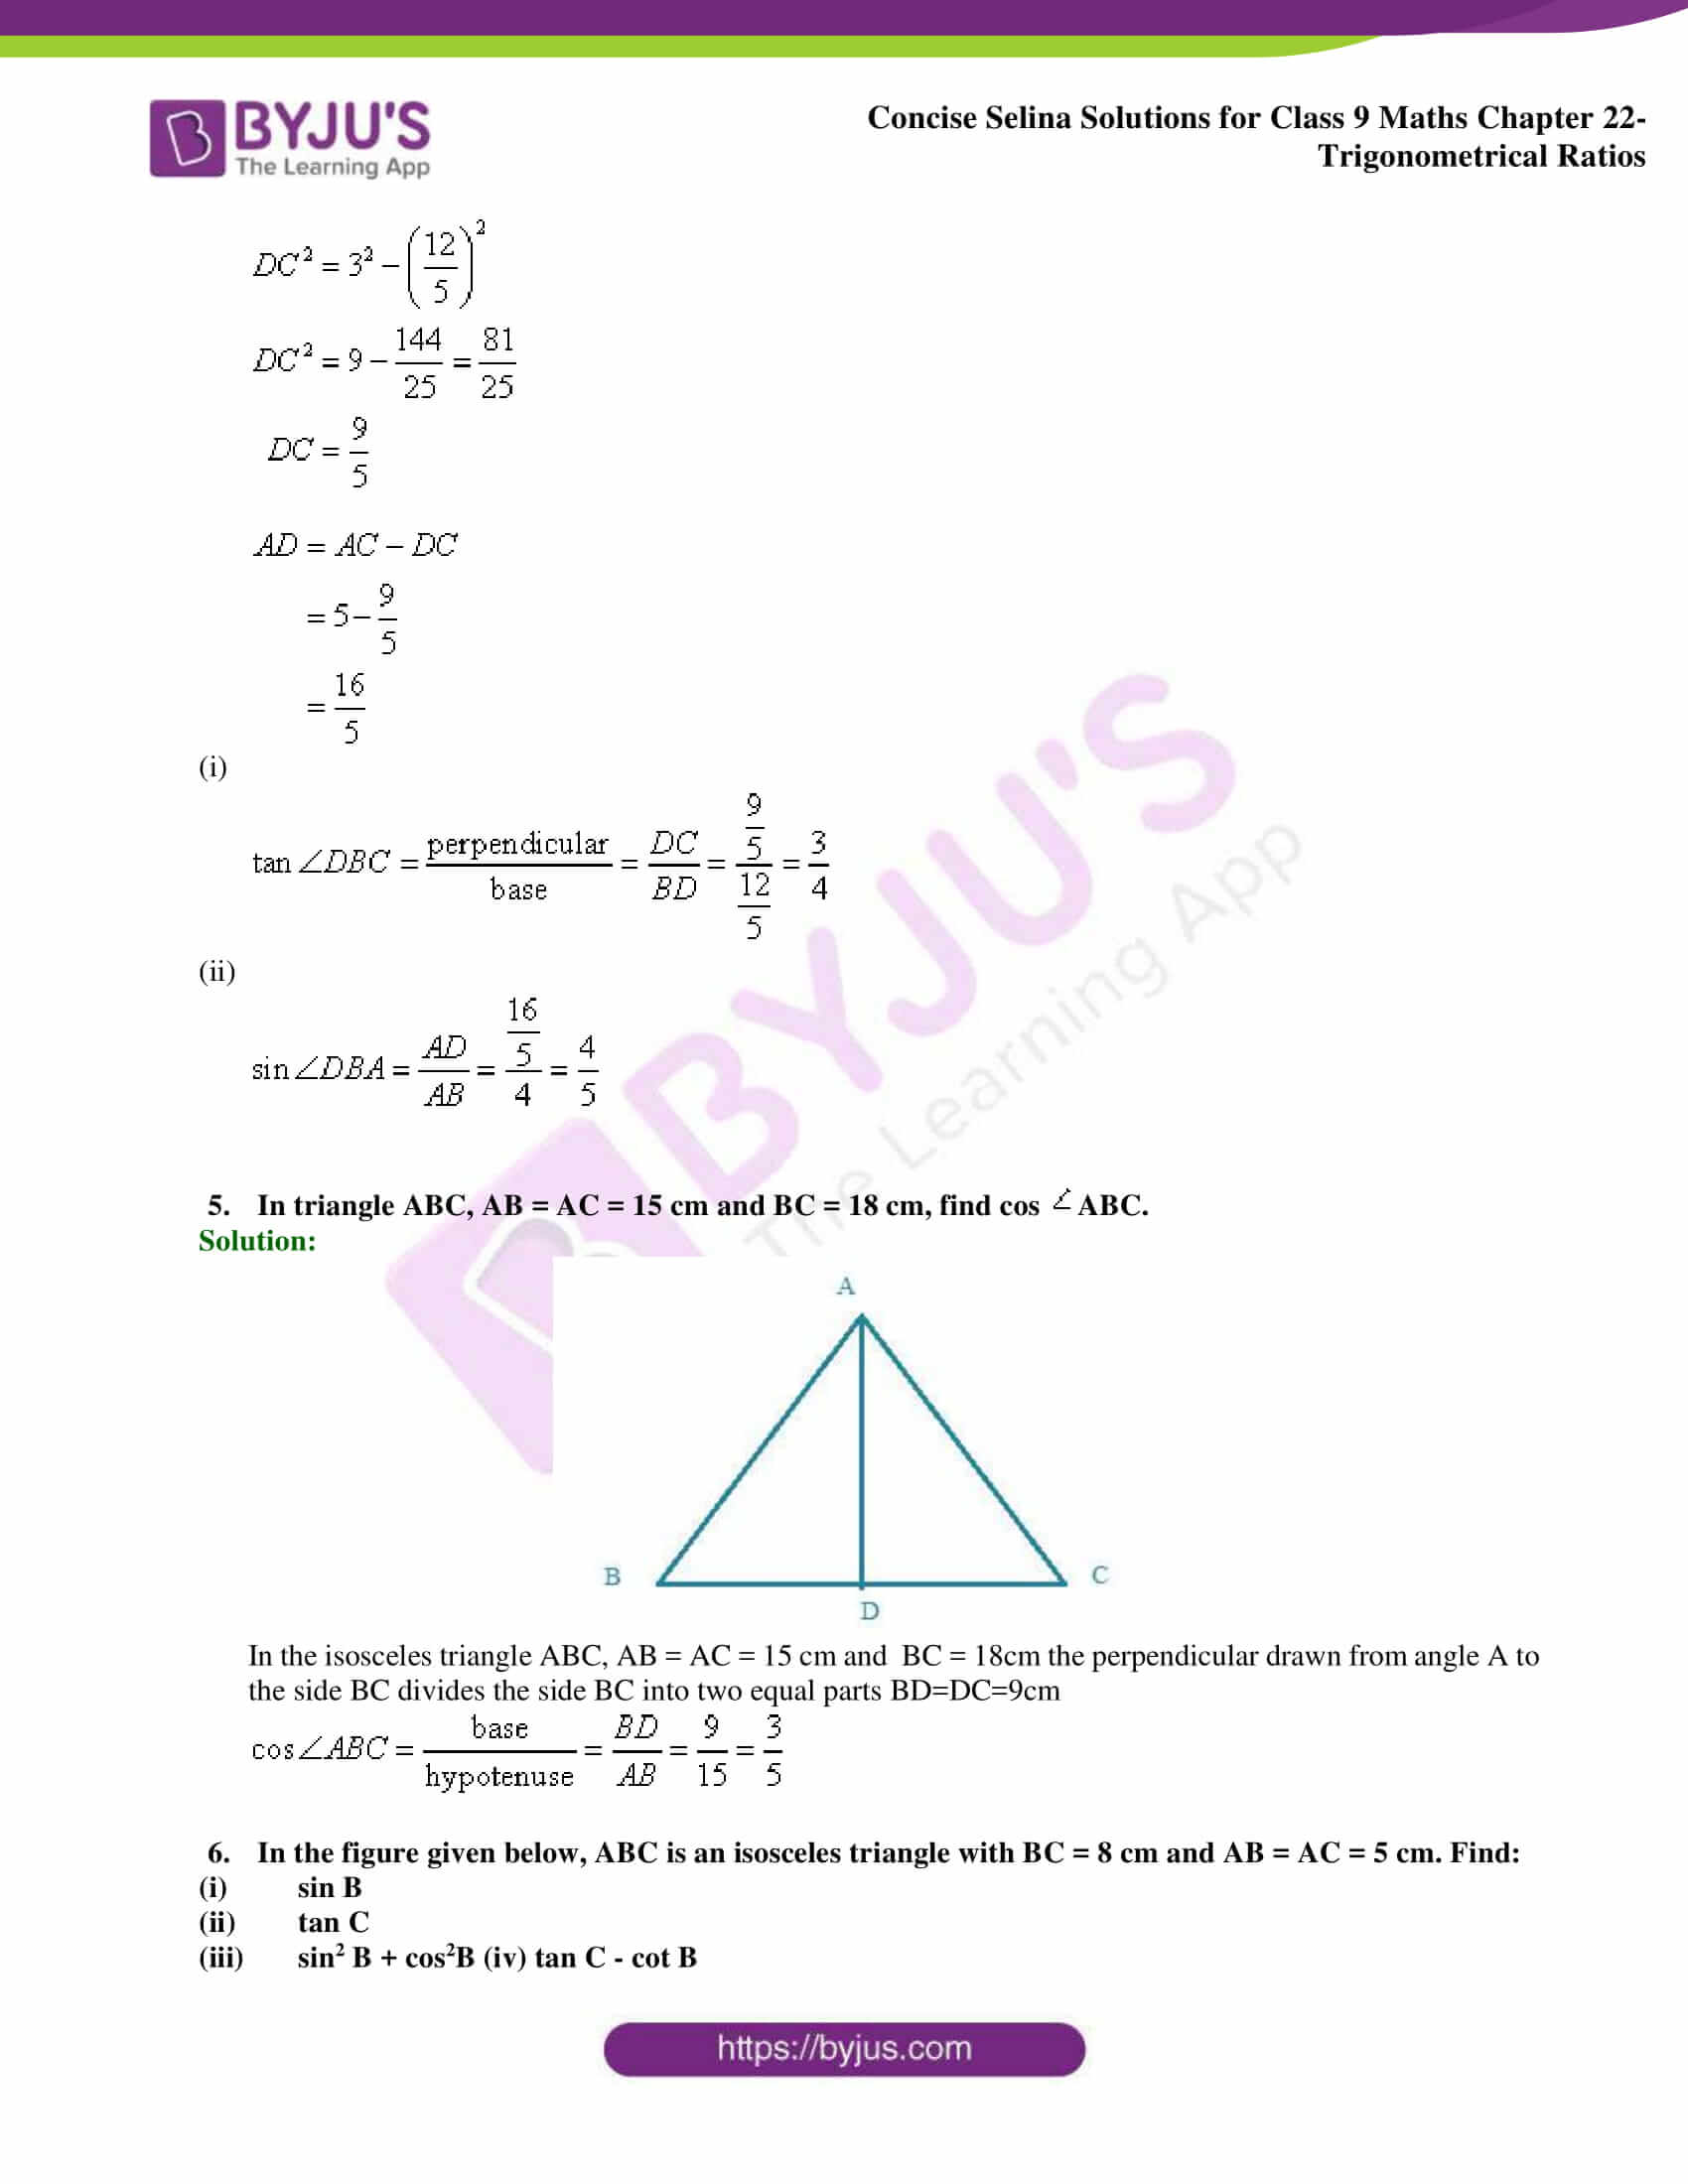 Concise Selina Solutions Class 9 Maths Chapter 22 Trigonometrical Ratios part 27